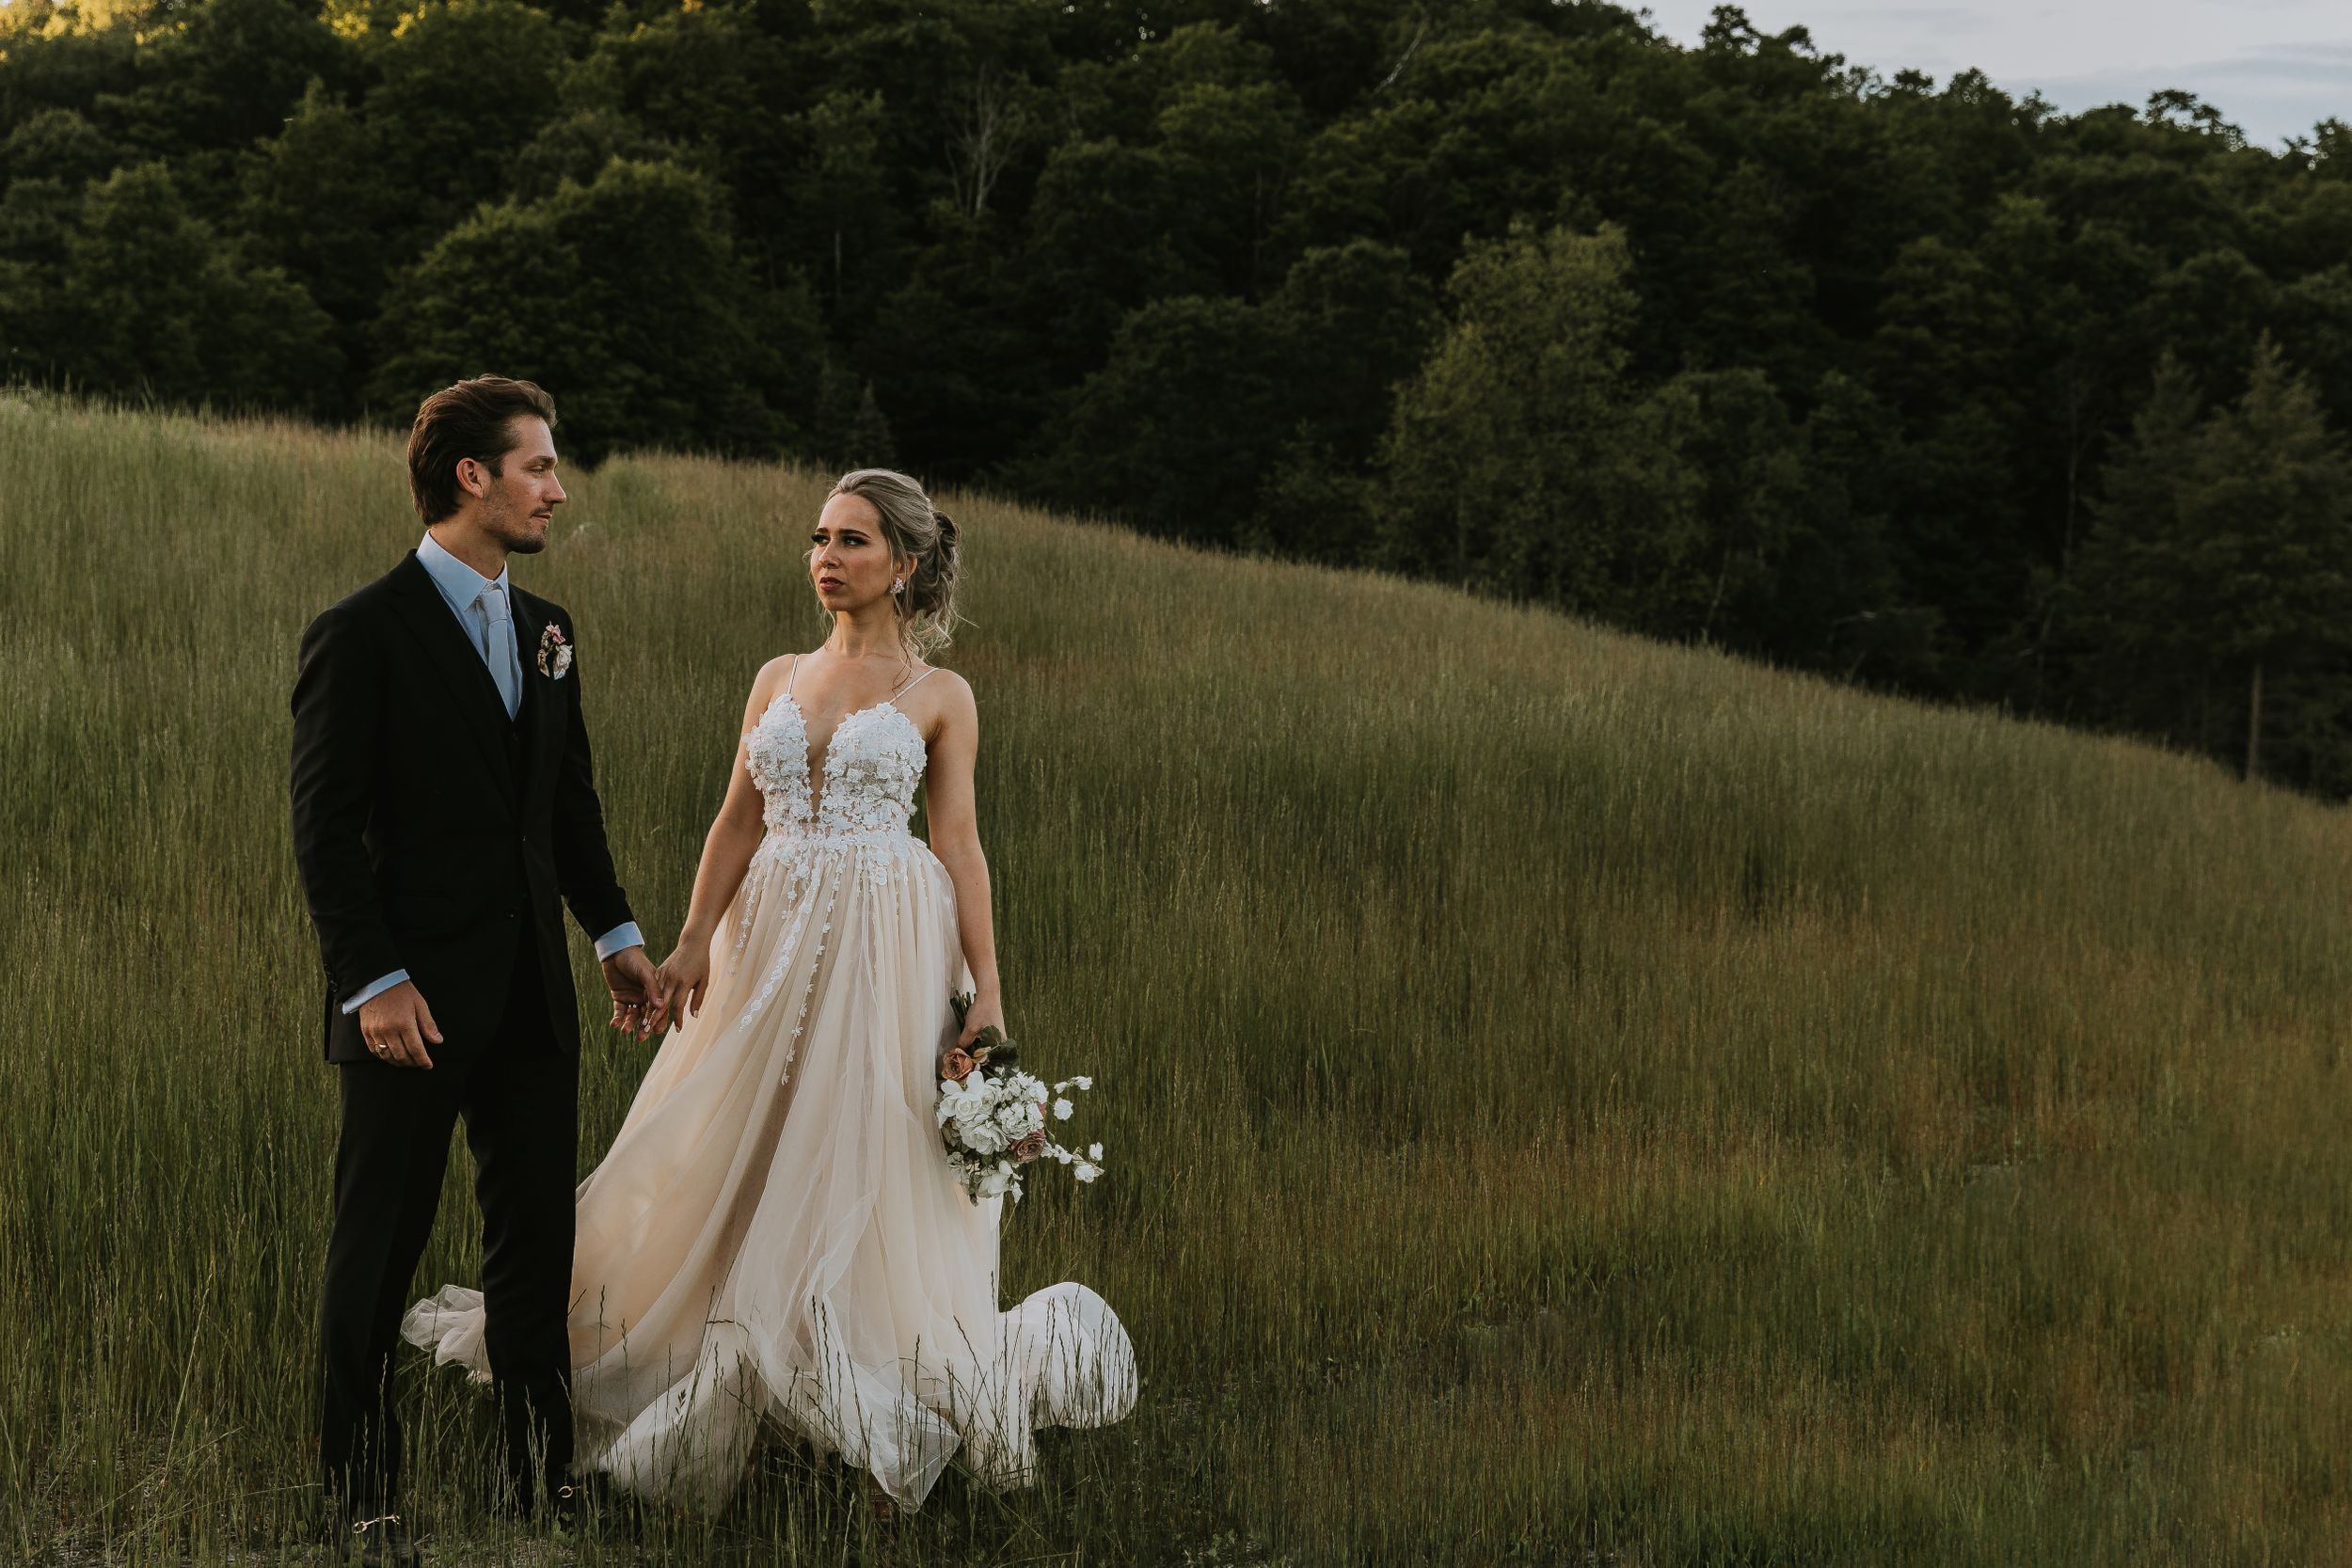 Glen Arbor Wedding Photographer Couples Image